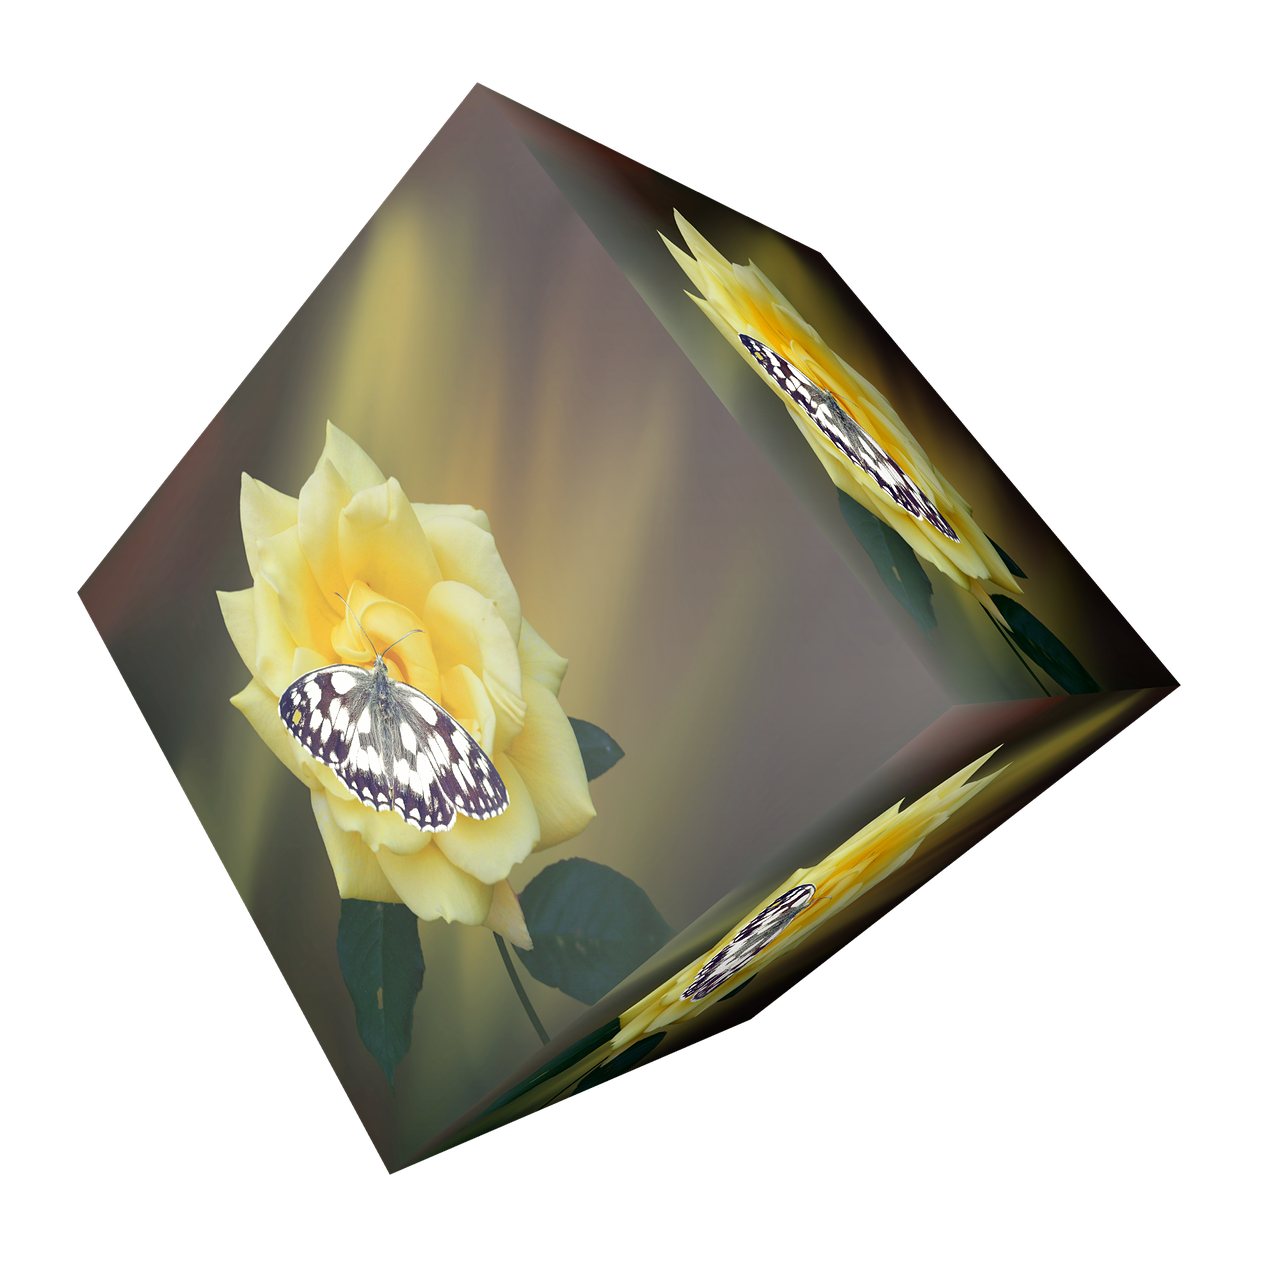 cube flower blossom free photo